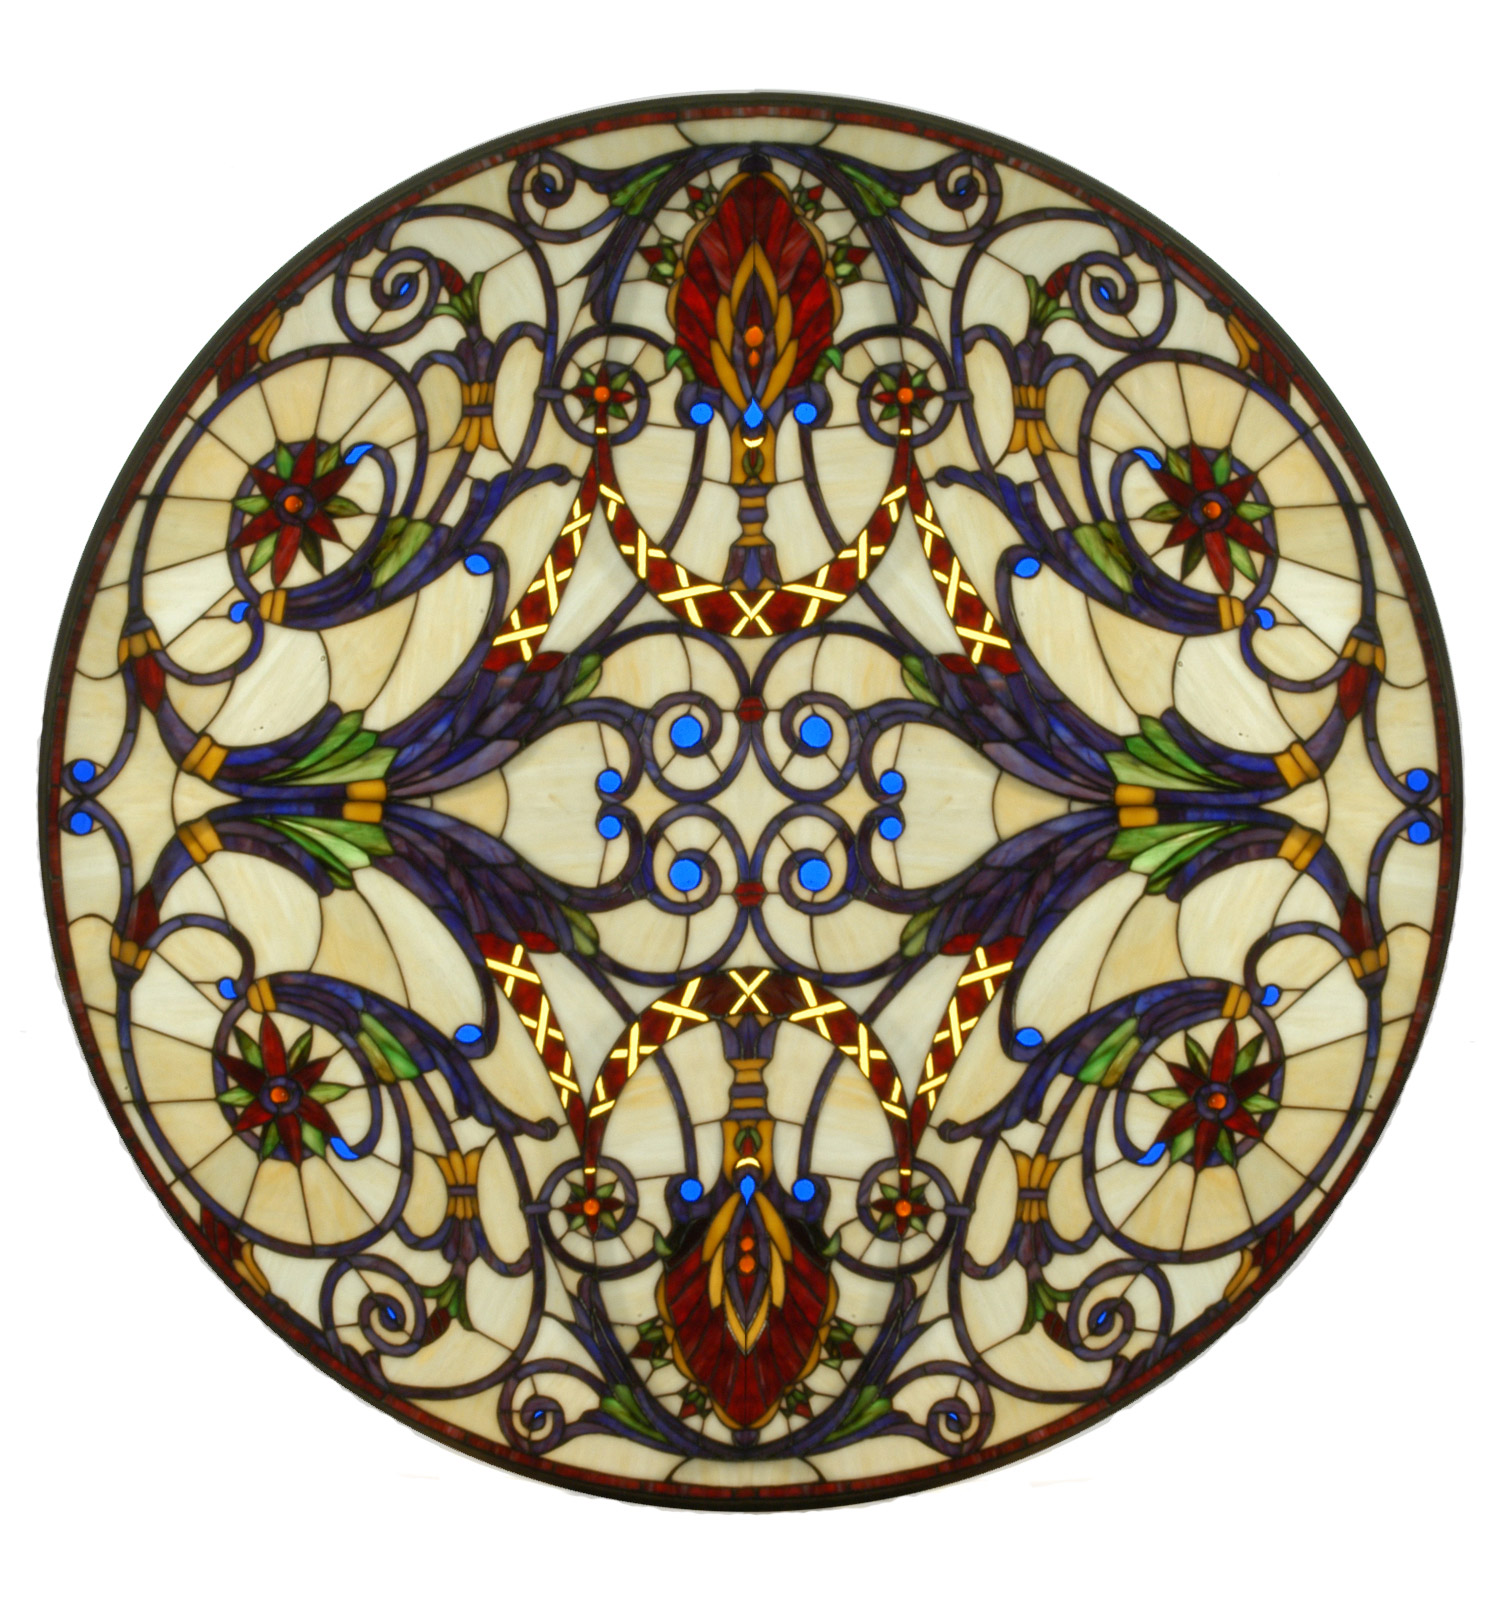 s j charles cp glass inspired image medium by stained window connick handle medallion